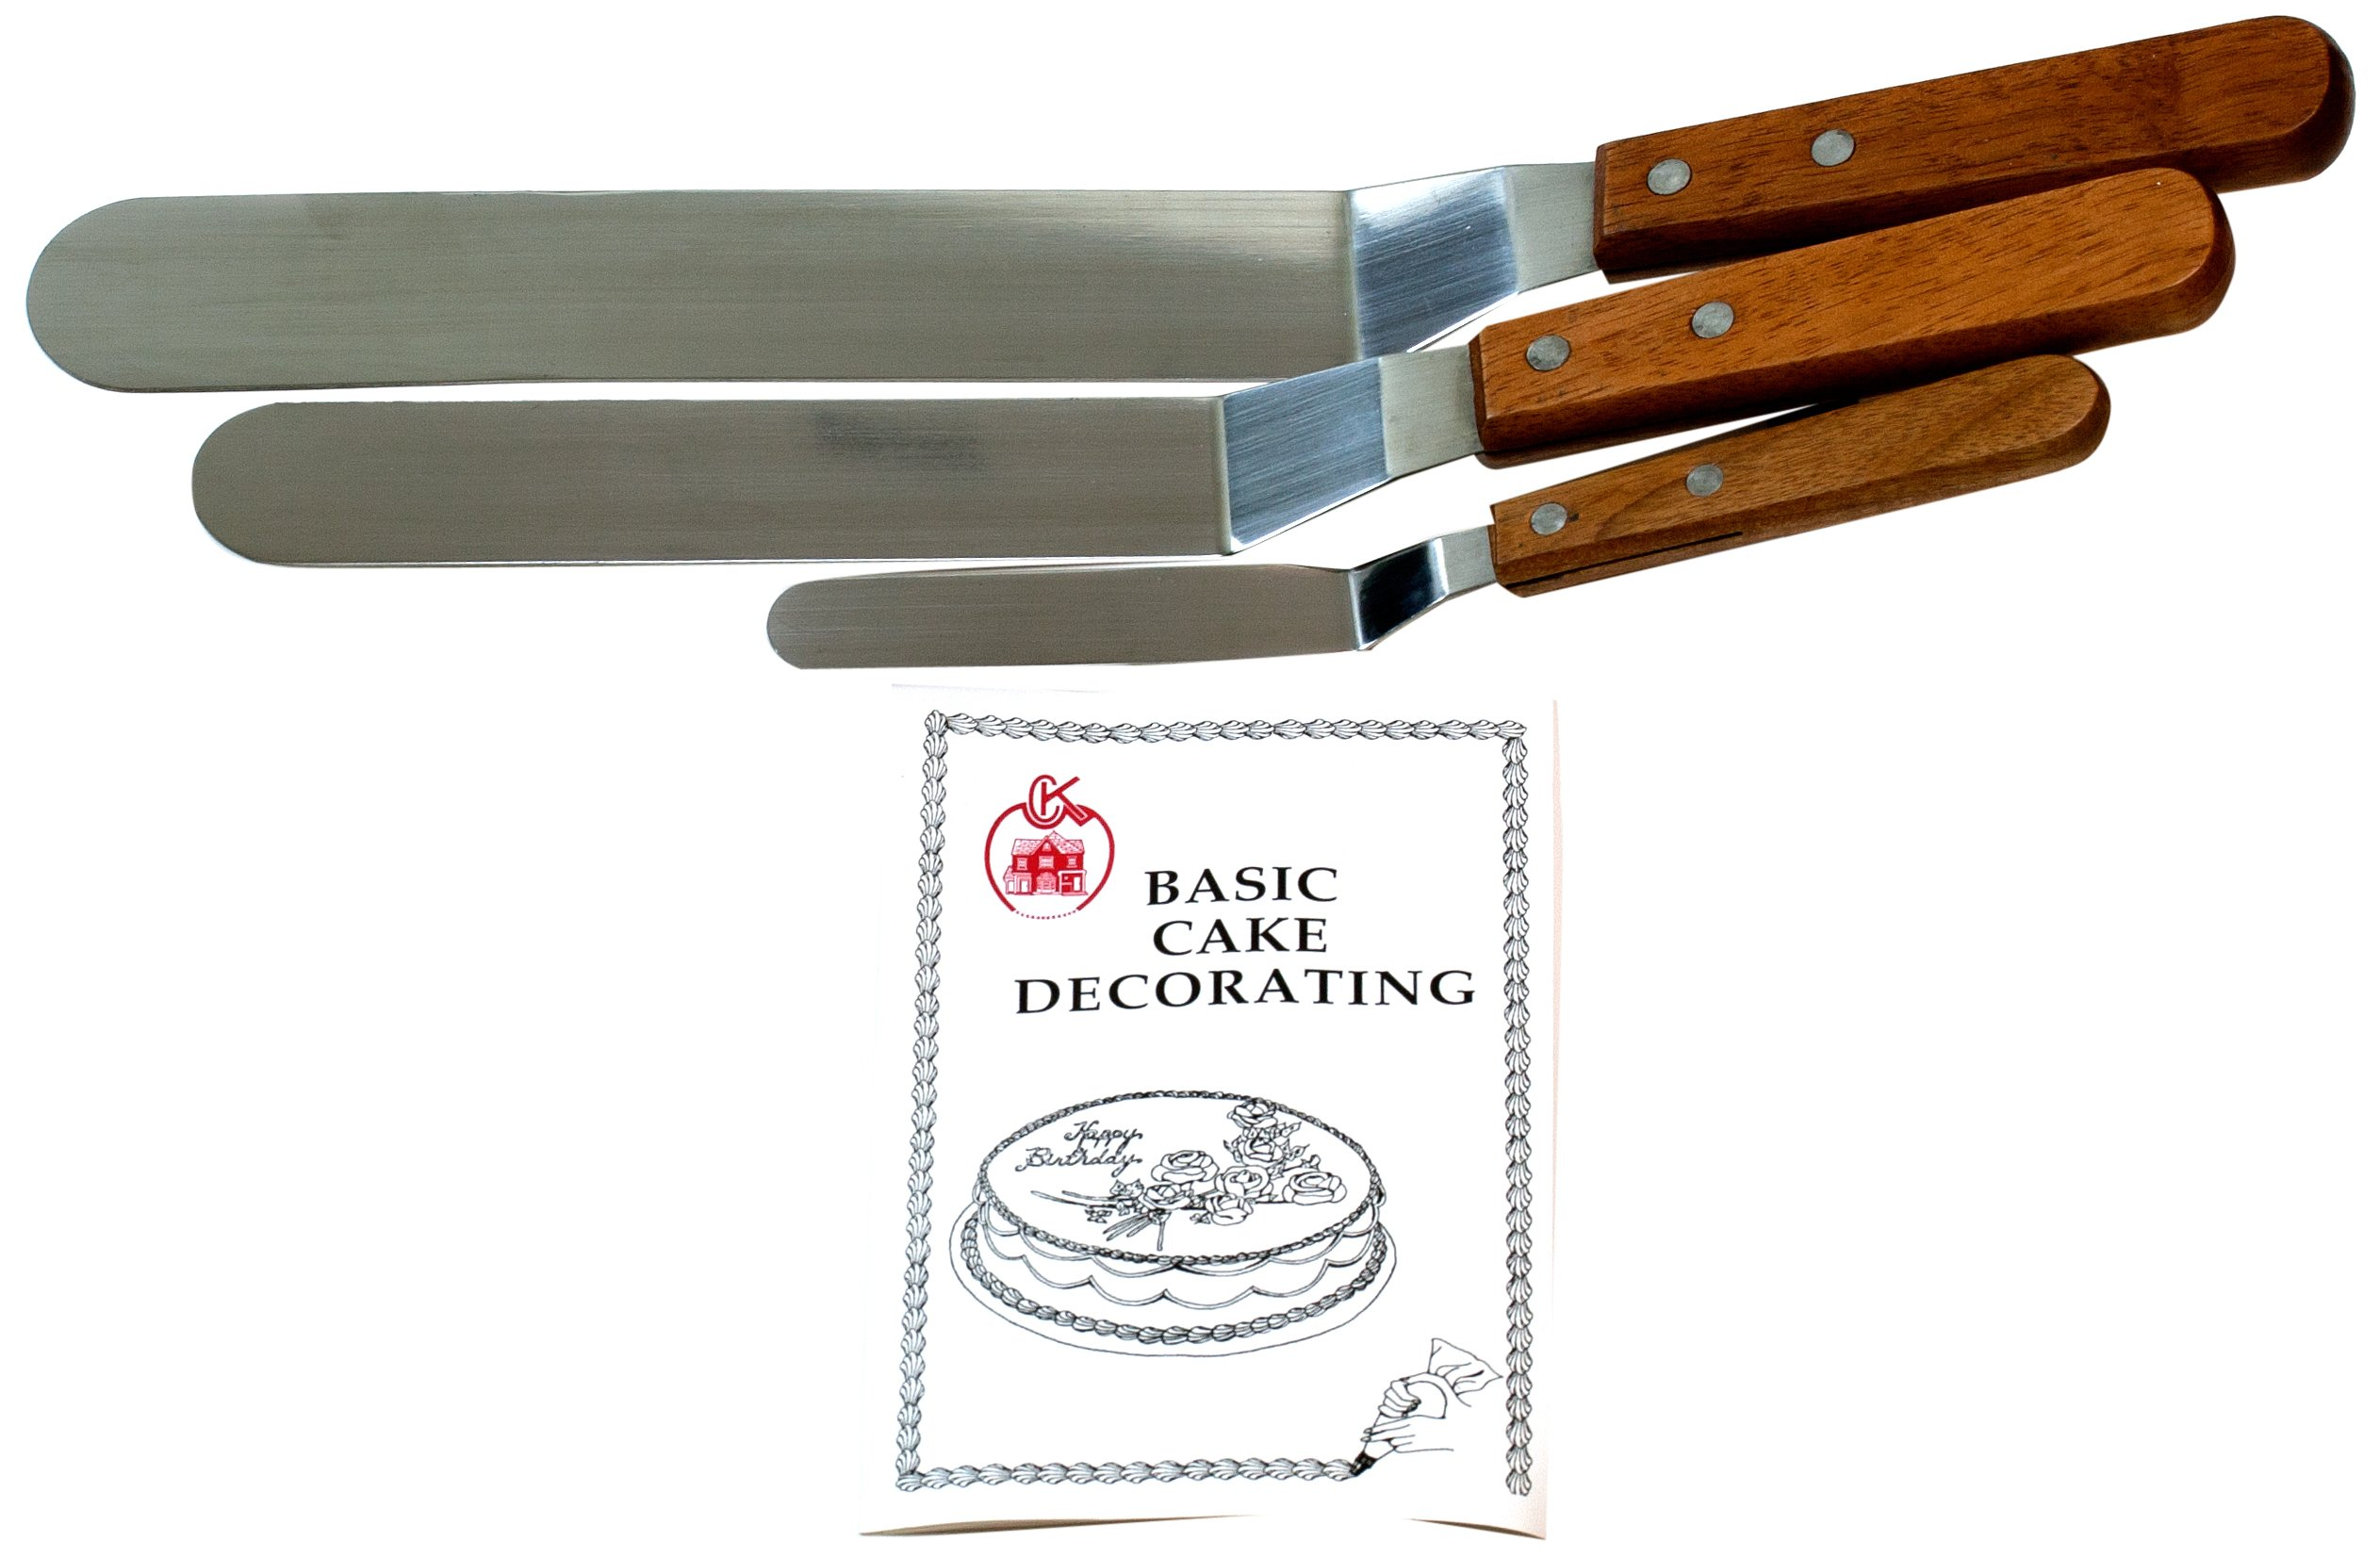 Cybrtrayd Offset Wood-Handled Cake Decorating Spatulas Plus Cake Decorating Instruction Booklet (4.25-Inch, 7.75-Inch and 9.25-Inch), Set of 3 by CybrTrayd